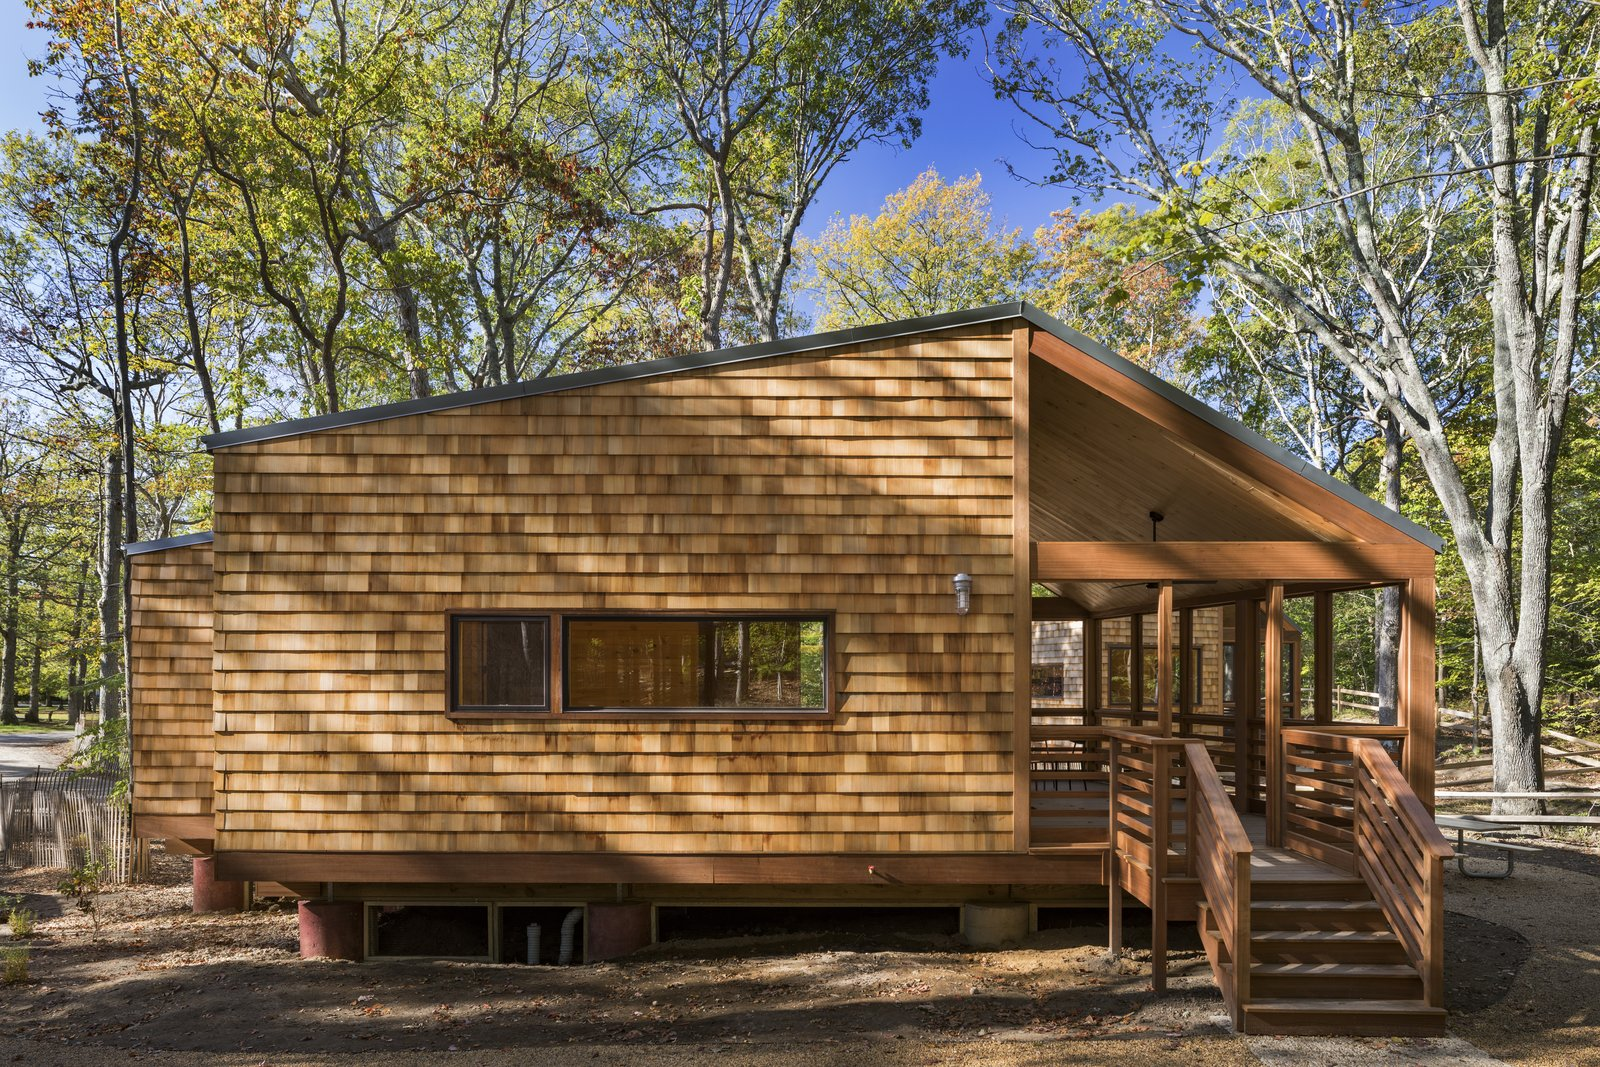 Exterior, Metal Roof Material, Wood Siding Material, Gable RoofLine, and Cabin Building Type  Photo 4 of 7 in A Long Island Campground Gets a Bunch of New Modern Cabins